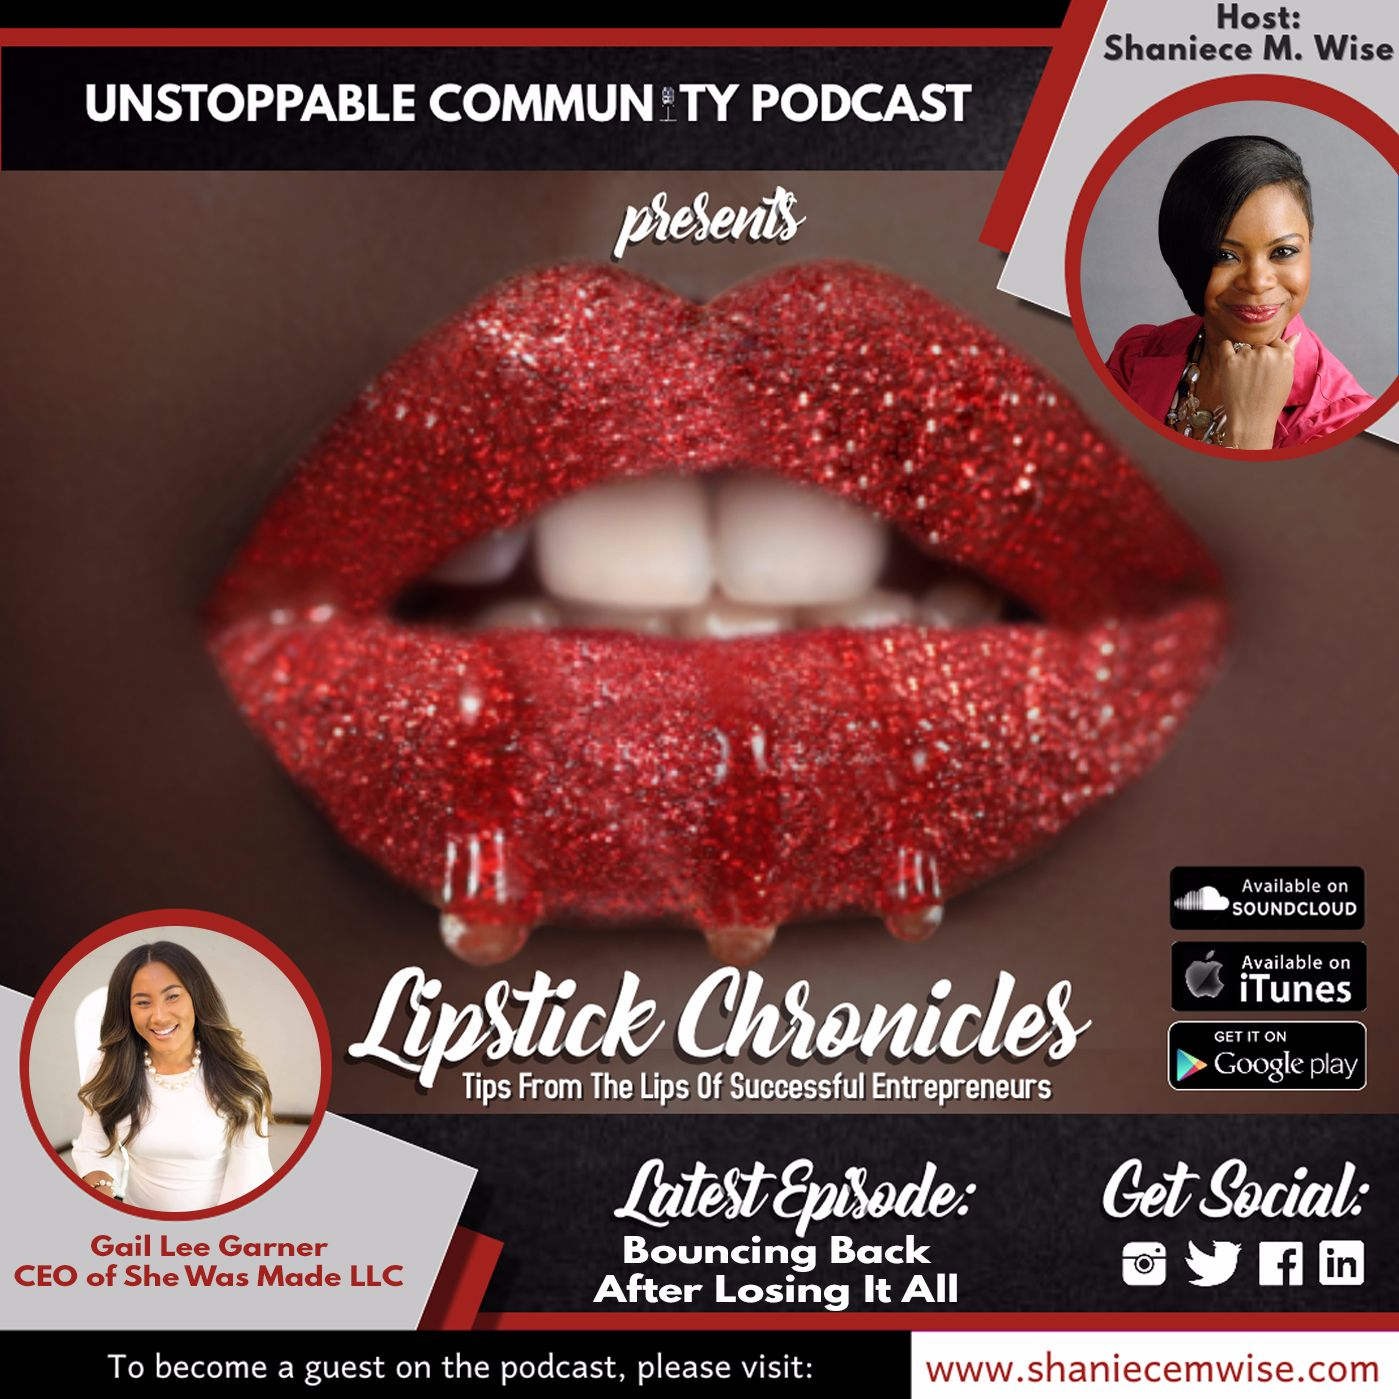 Red Lipstick Chronicles: Tips From The Lips Of Successful Entrepreneurs Season 1, Episode 2